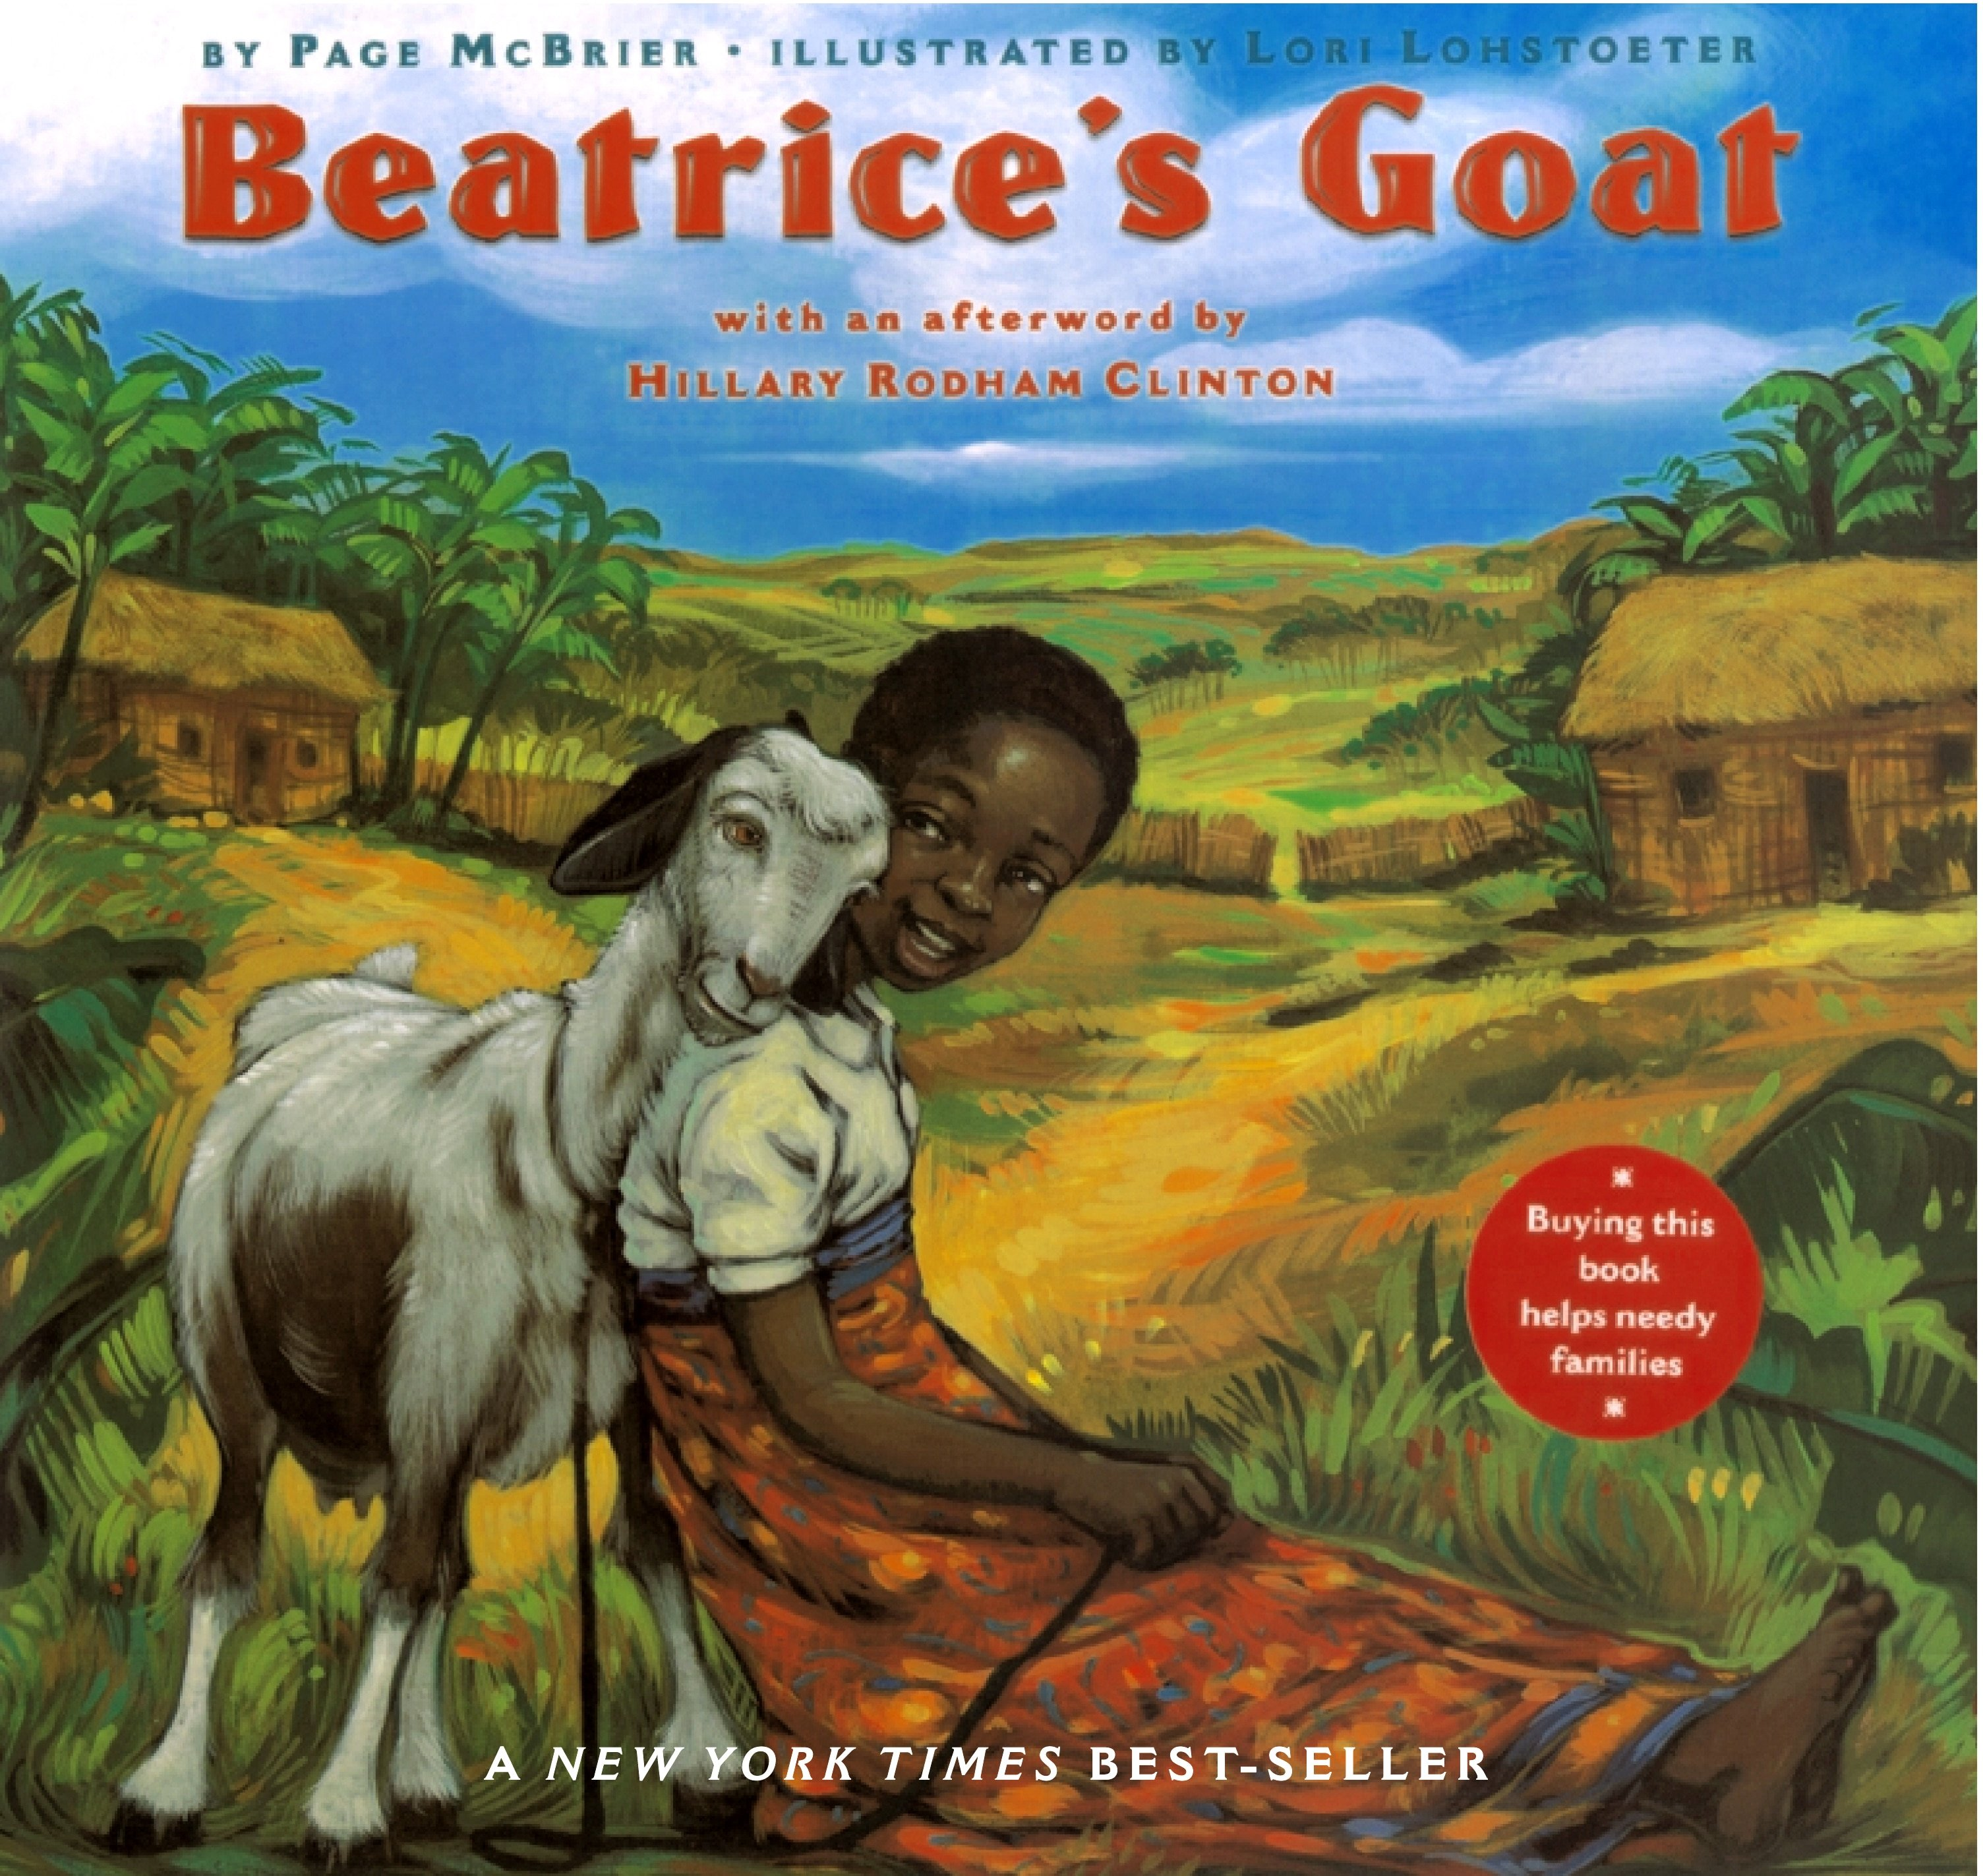 Beatrice's Goat by Page McBrier, illustrated by Lori Lohstoeter